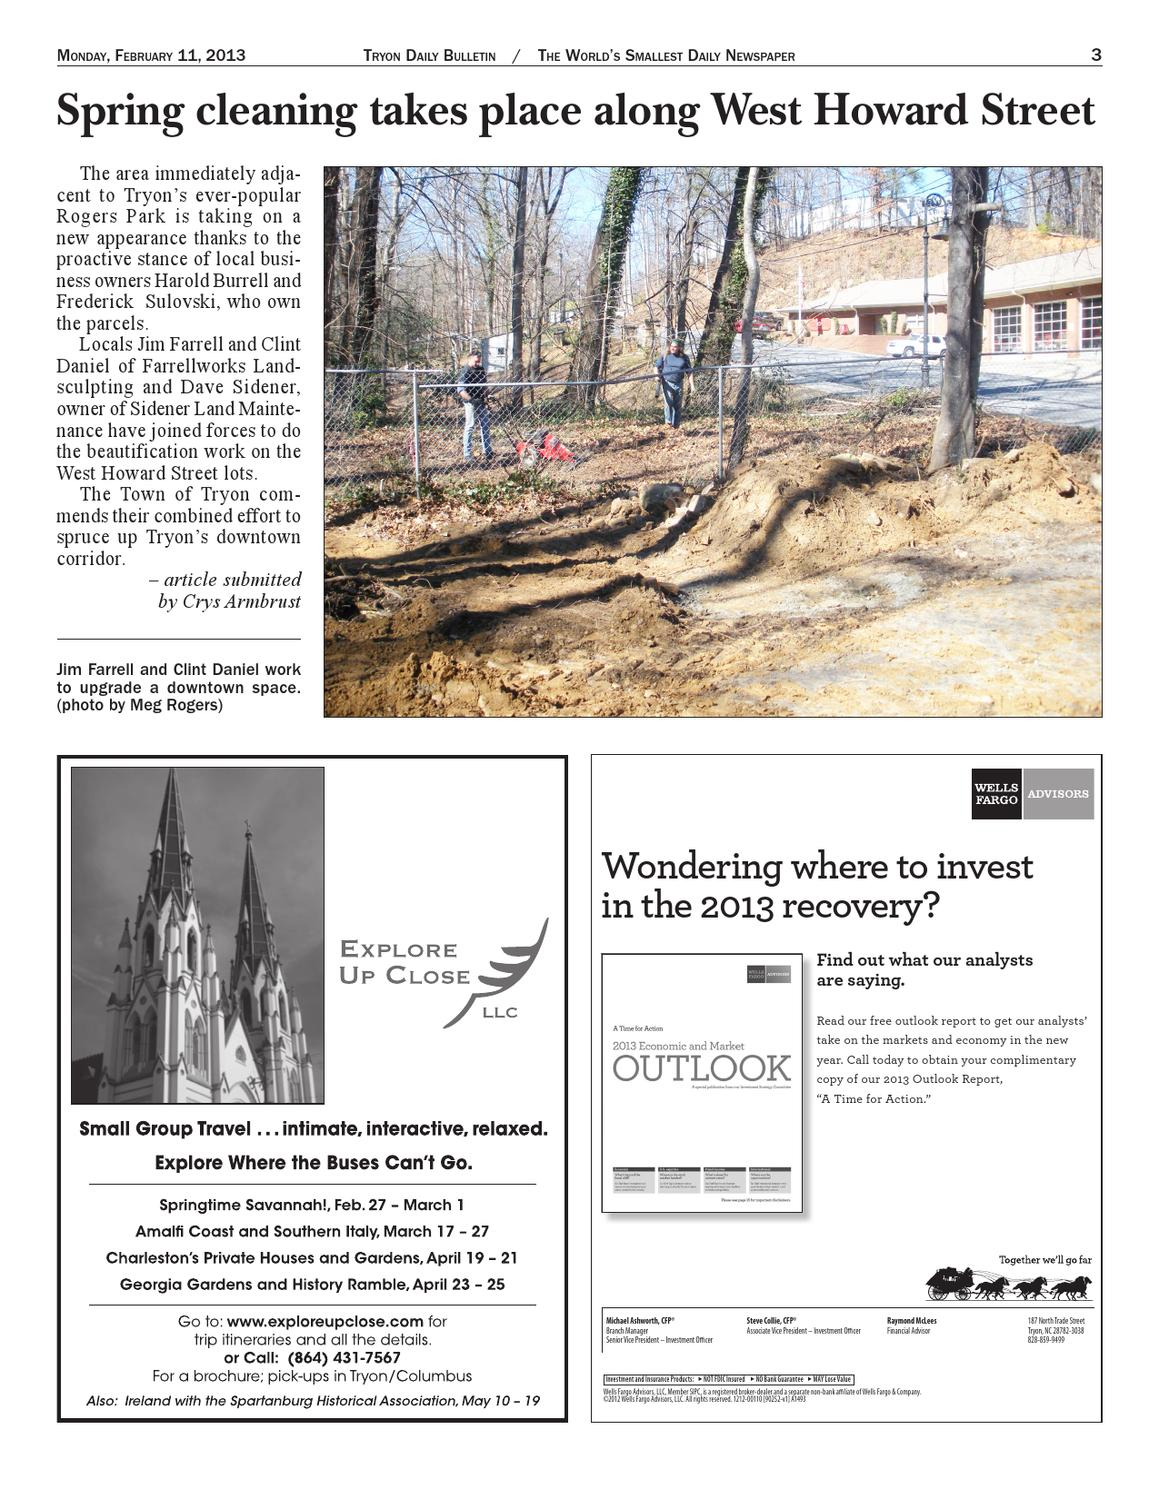 2-11-13 Bulletin by Tryon Daily Bulletin - issuu